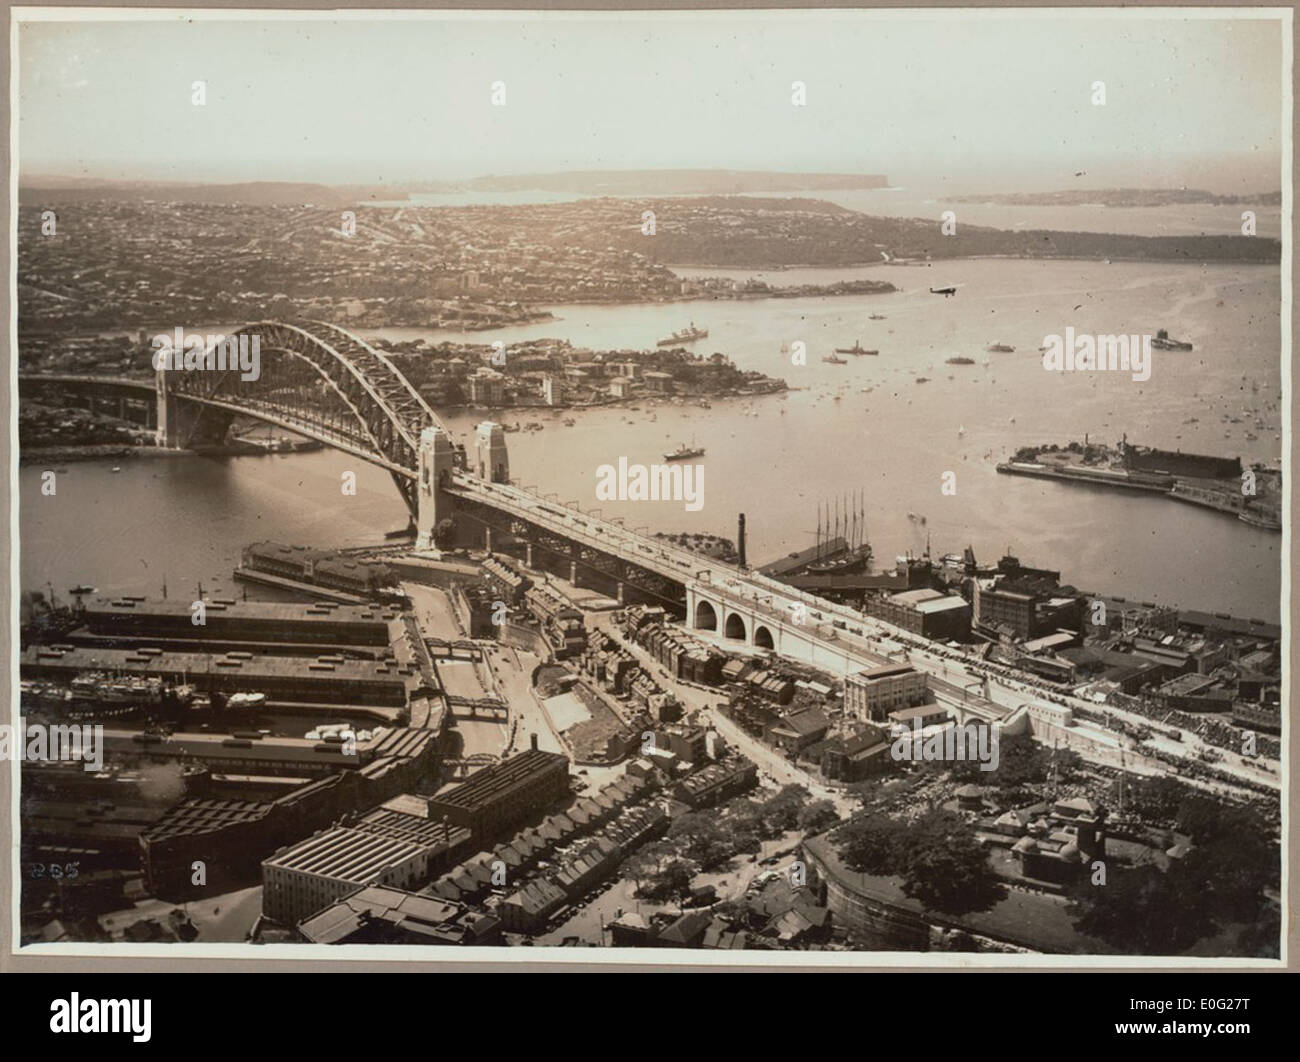 Sydney Harbour Bridge from Dawes Point, 19 March, 1932 - Stock Image